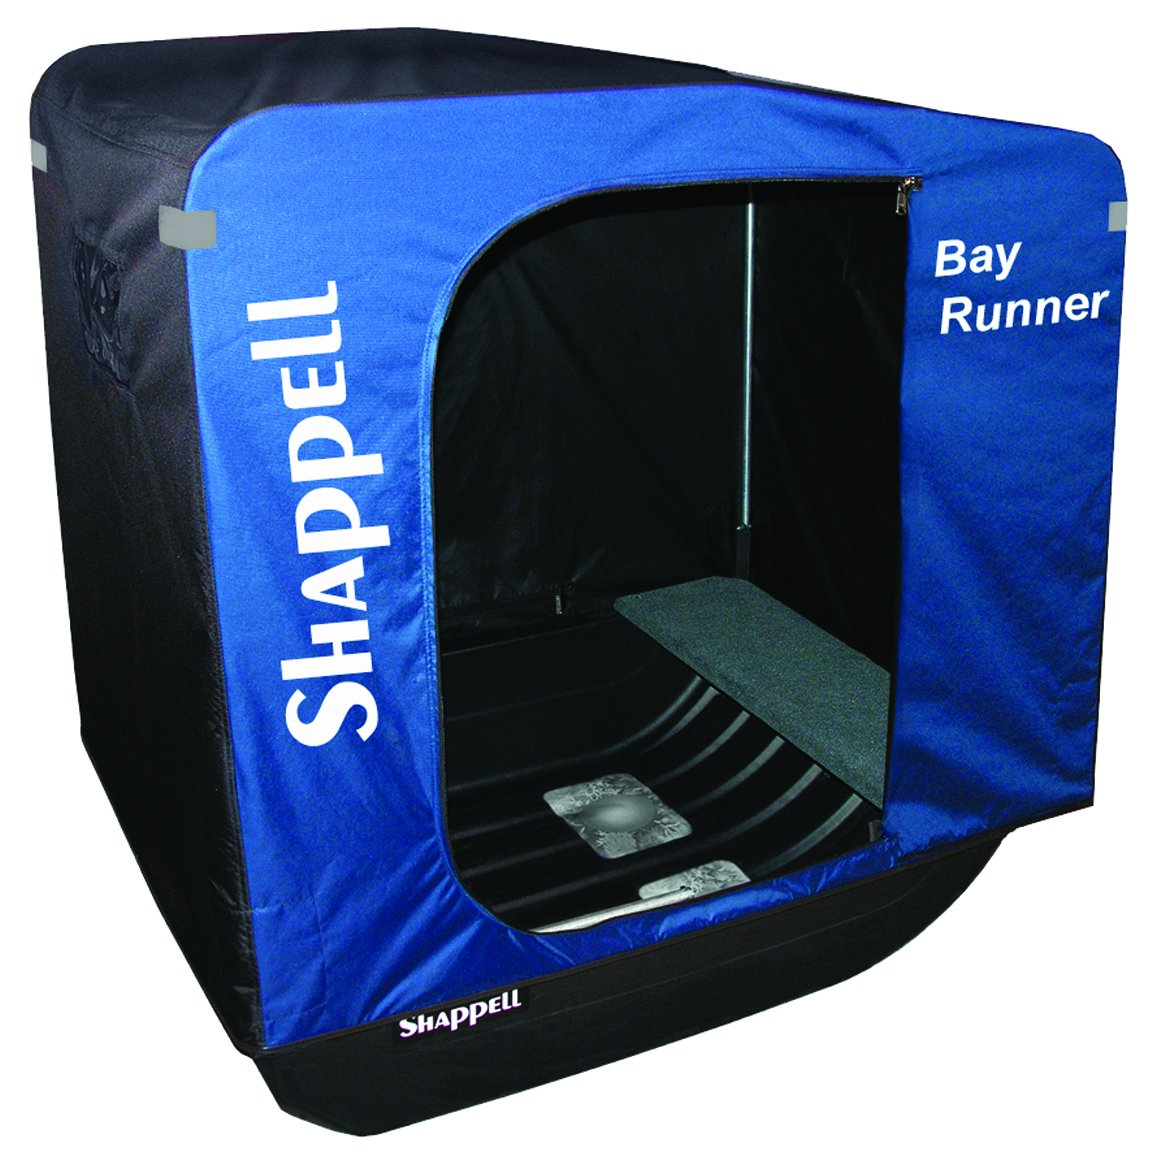 Amazon.com  Shappell Bay Runner Ice Tent  Fishing Ice Fishing Shelters  Sports u0026 Outdoors  sc 1 st  Amazon.com & Amazon.com : Shappell Bay Runner Ice Tent : Fishing Ice Fishing ...